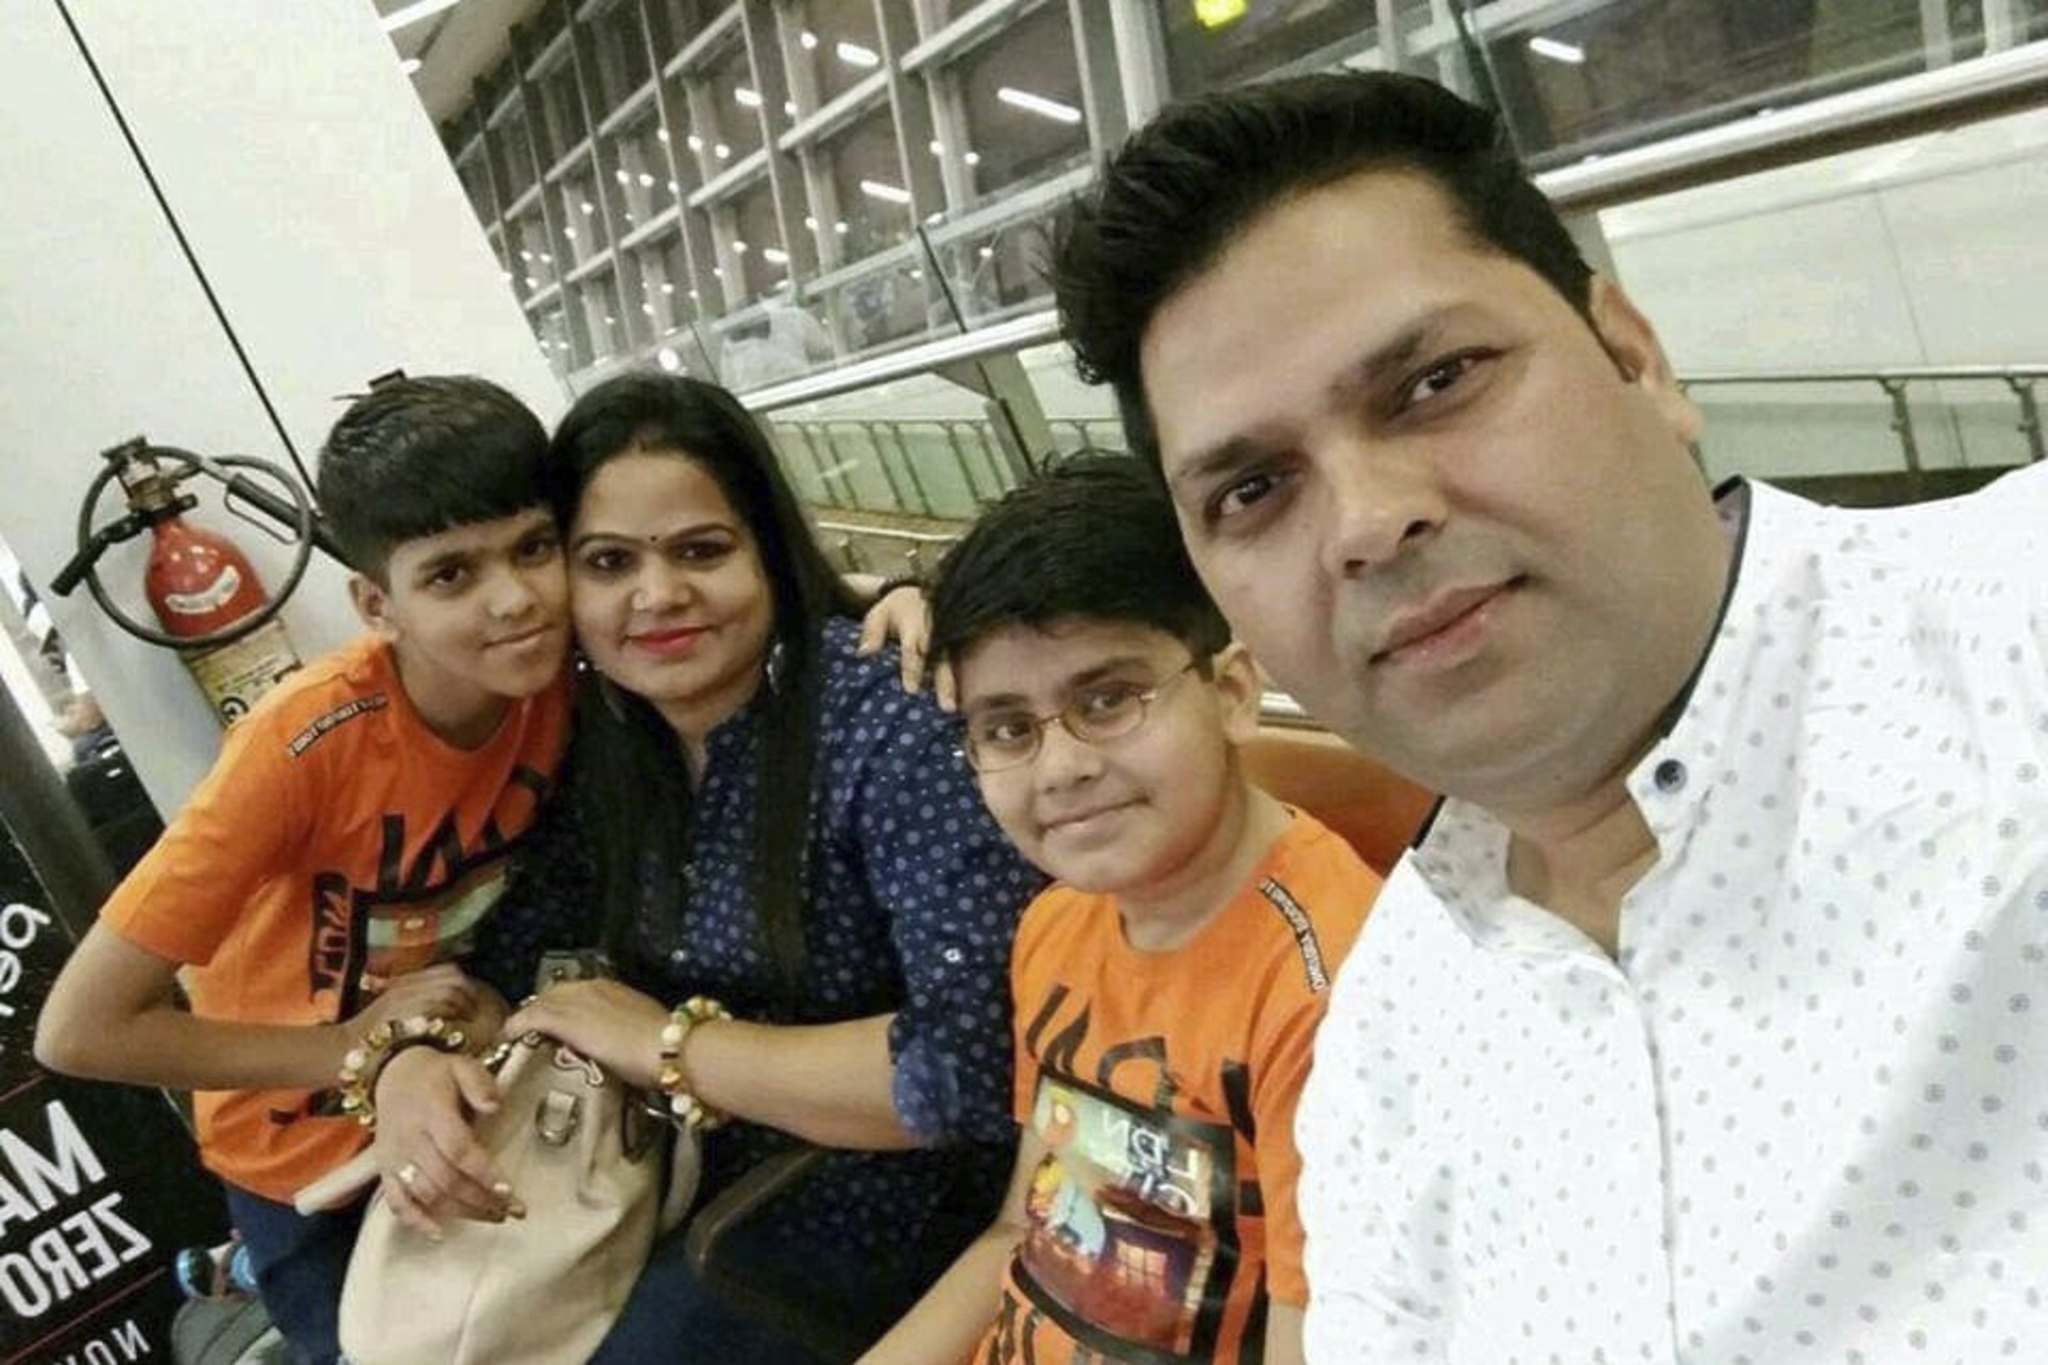 Ram Nivash Misra and Anupam Tripathi with their sons Shreyaan and Aaram. (GoFundMe)